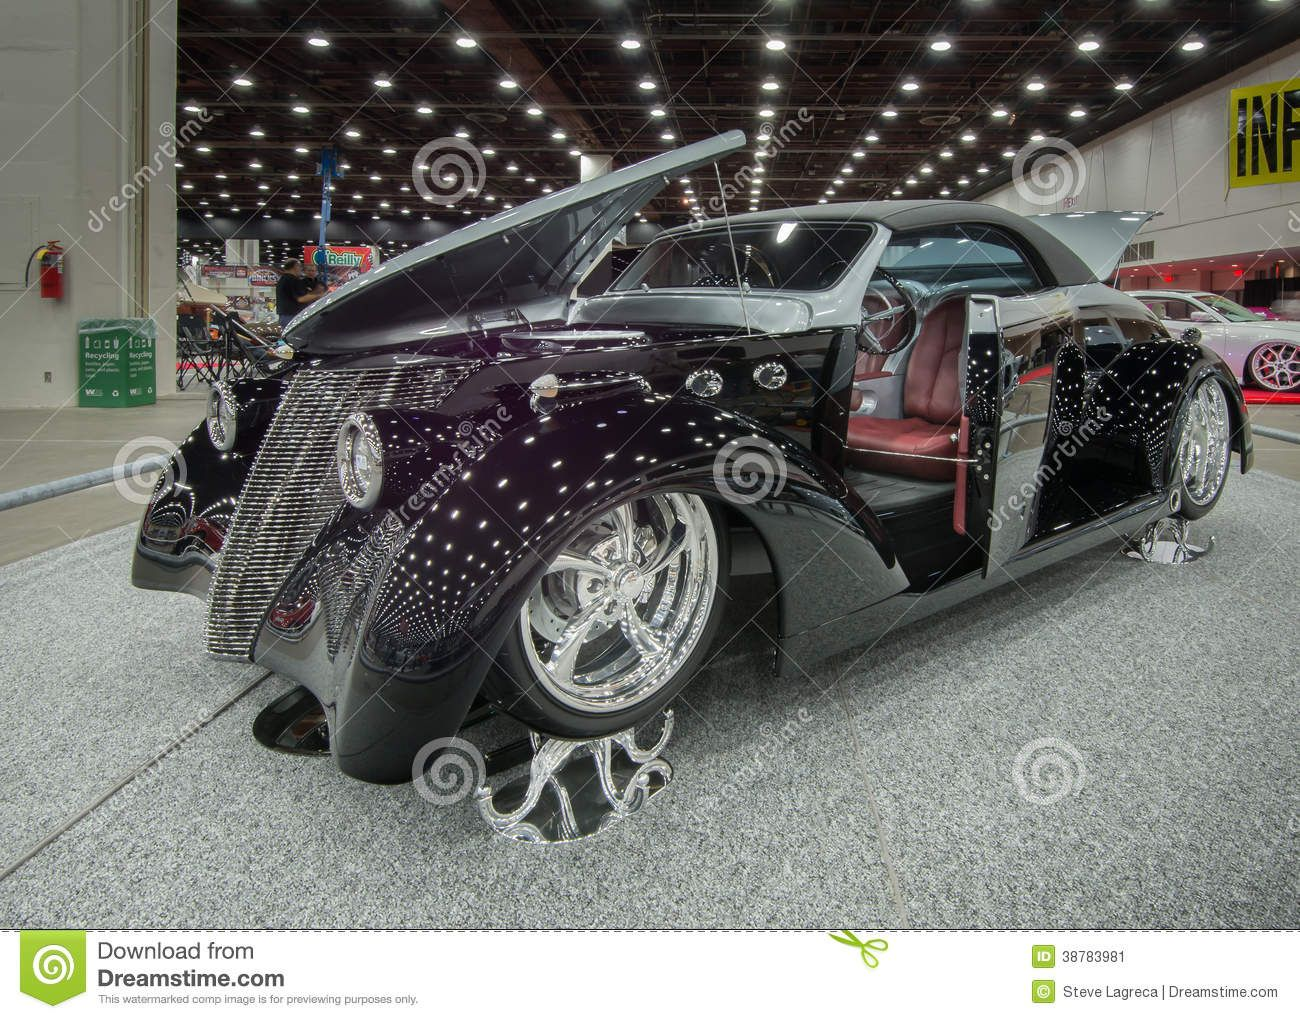 1937 ford coupe custom - Google Search